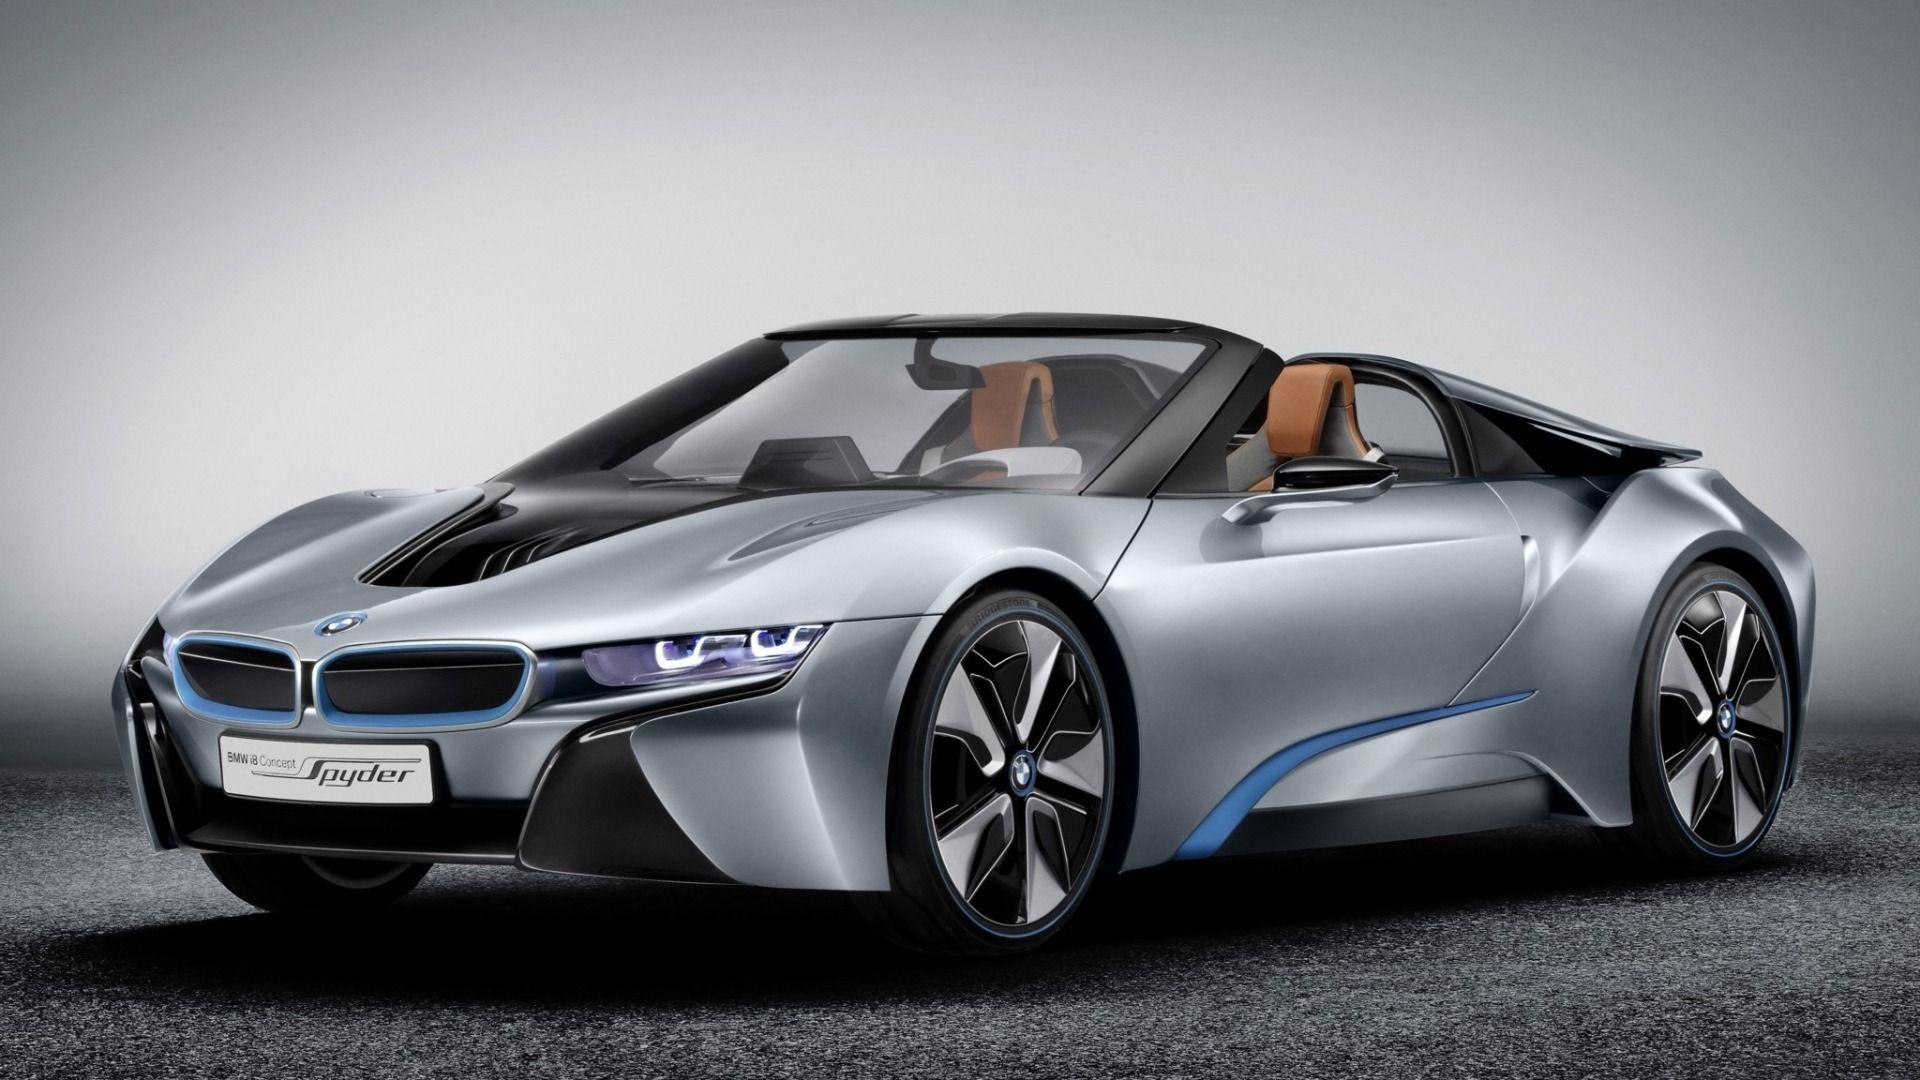 Picture 2016, Best BMW Car Wallpapers Free